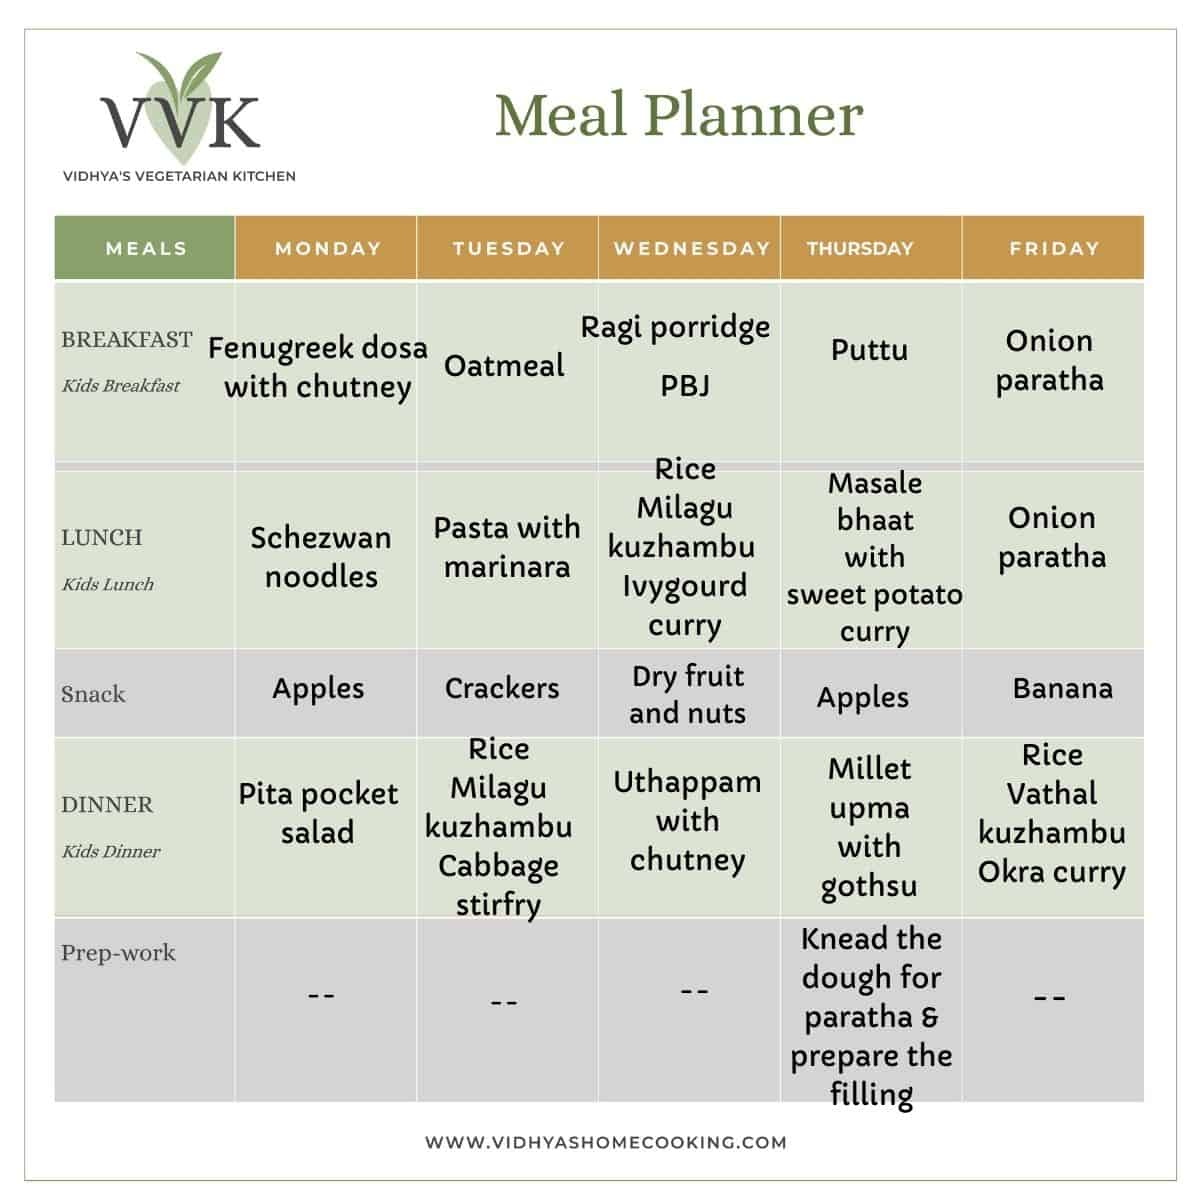 VVK meal planner template with recipes